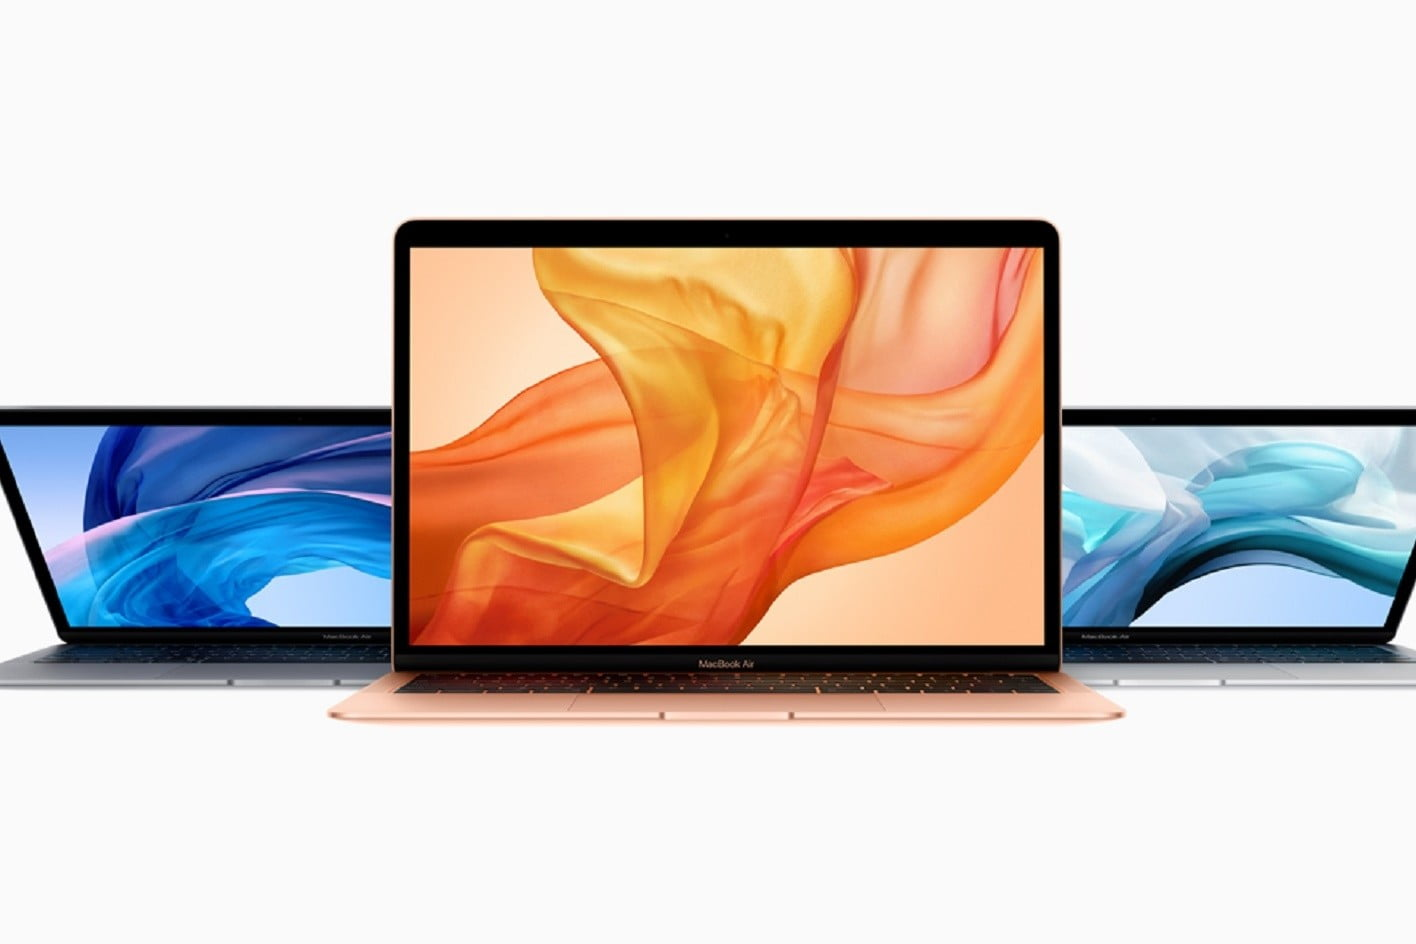 Awe Inspiring Best Buy Cuts Price Of Select Macbook Air And Macbook Pro Download Free Architecture Designs Embacsunscenecom